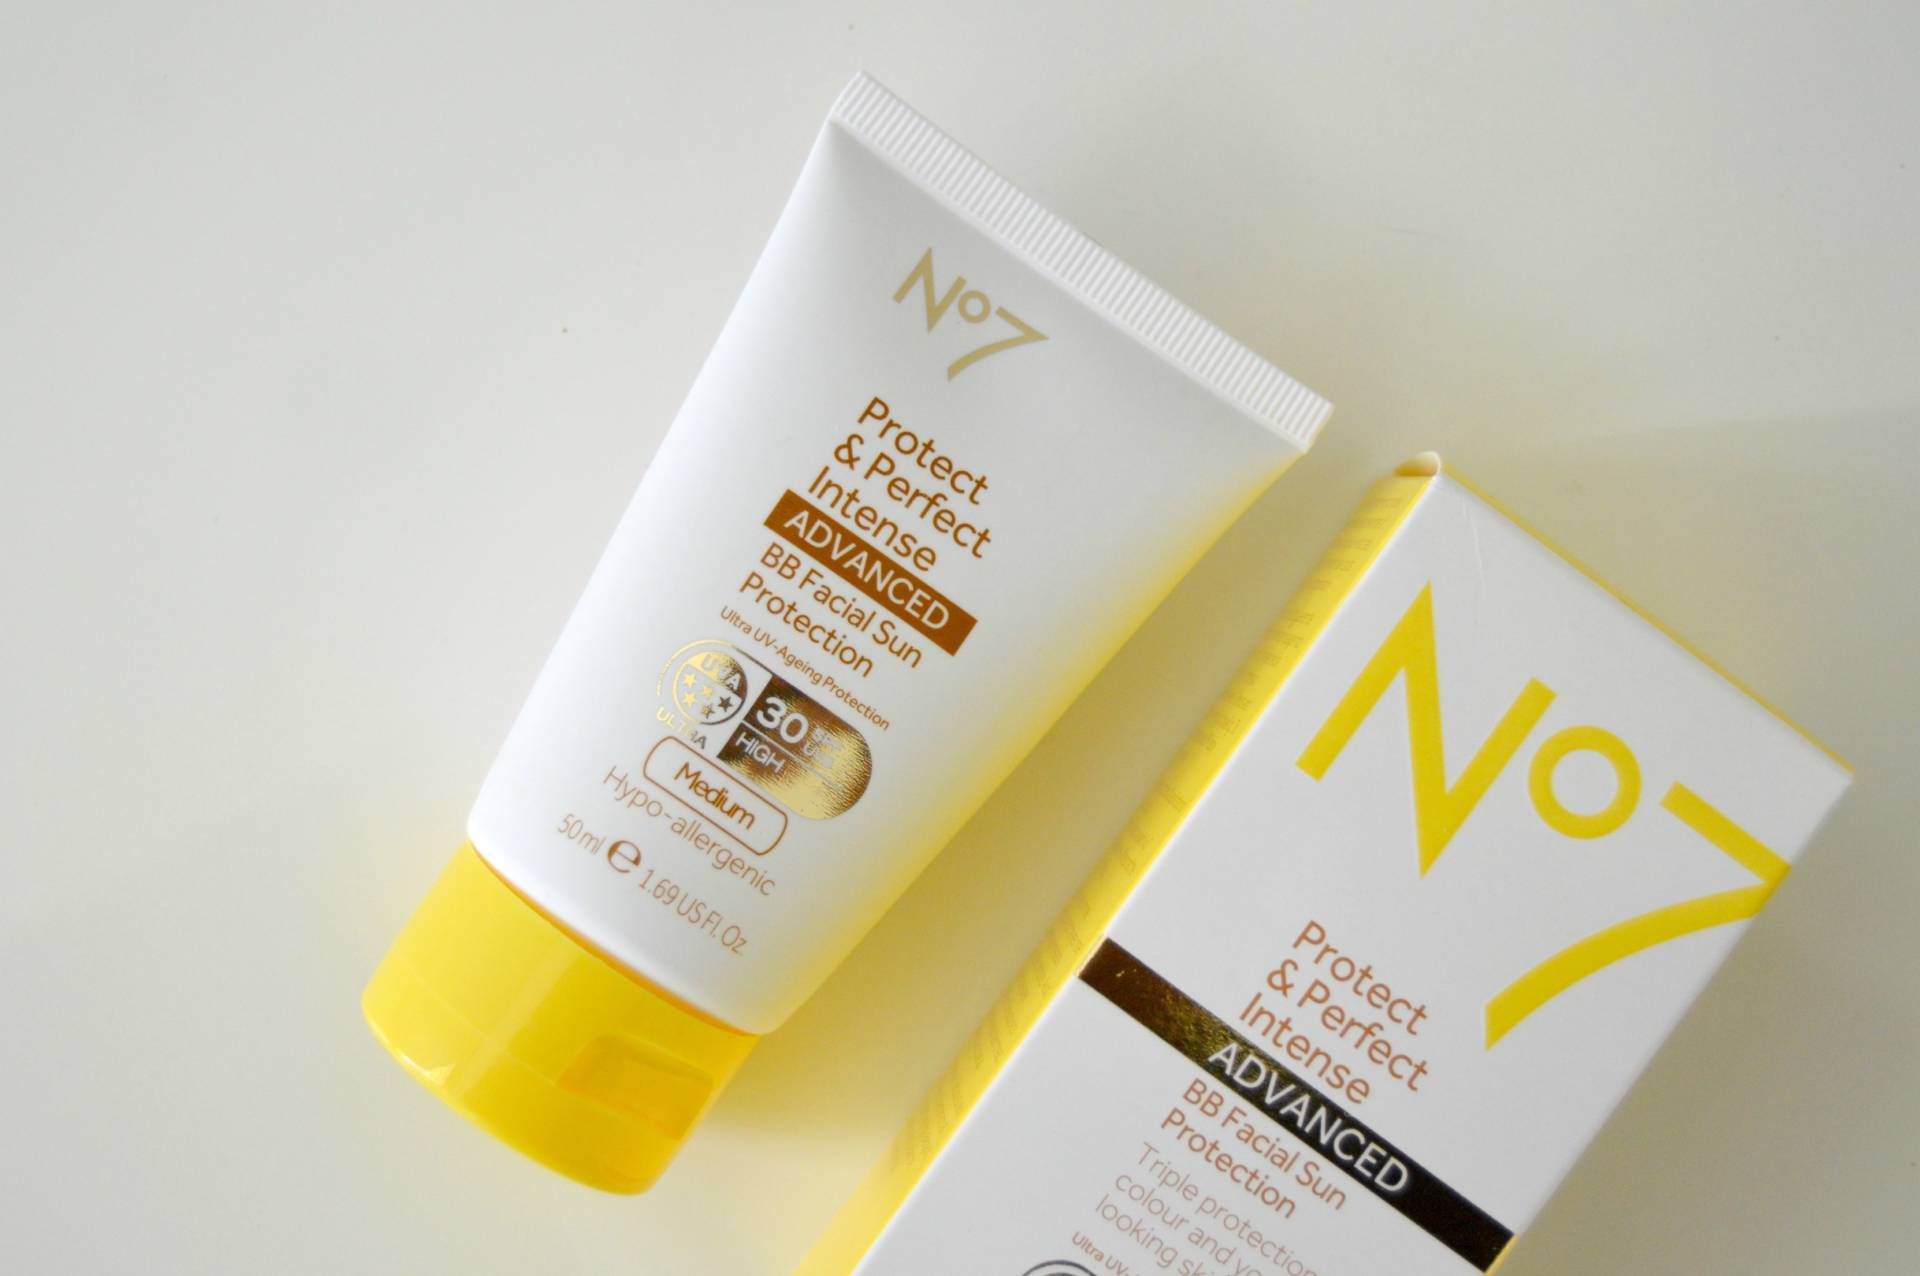 boots no7 protect perfect spf 30 bb facial sun protection review inhautepursuit